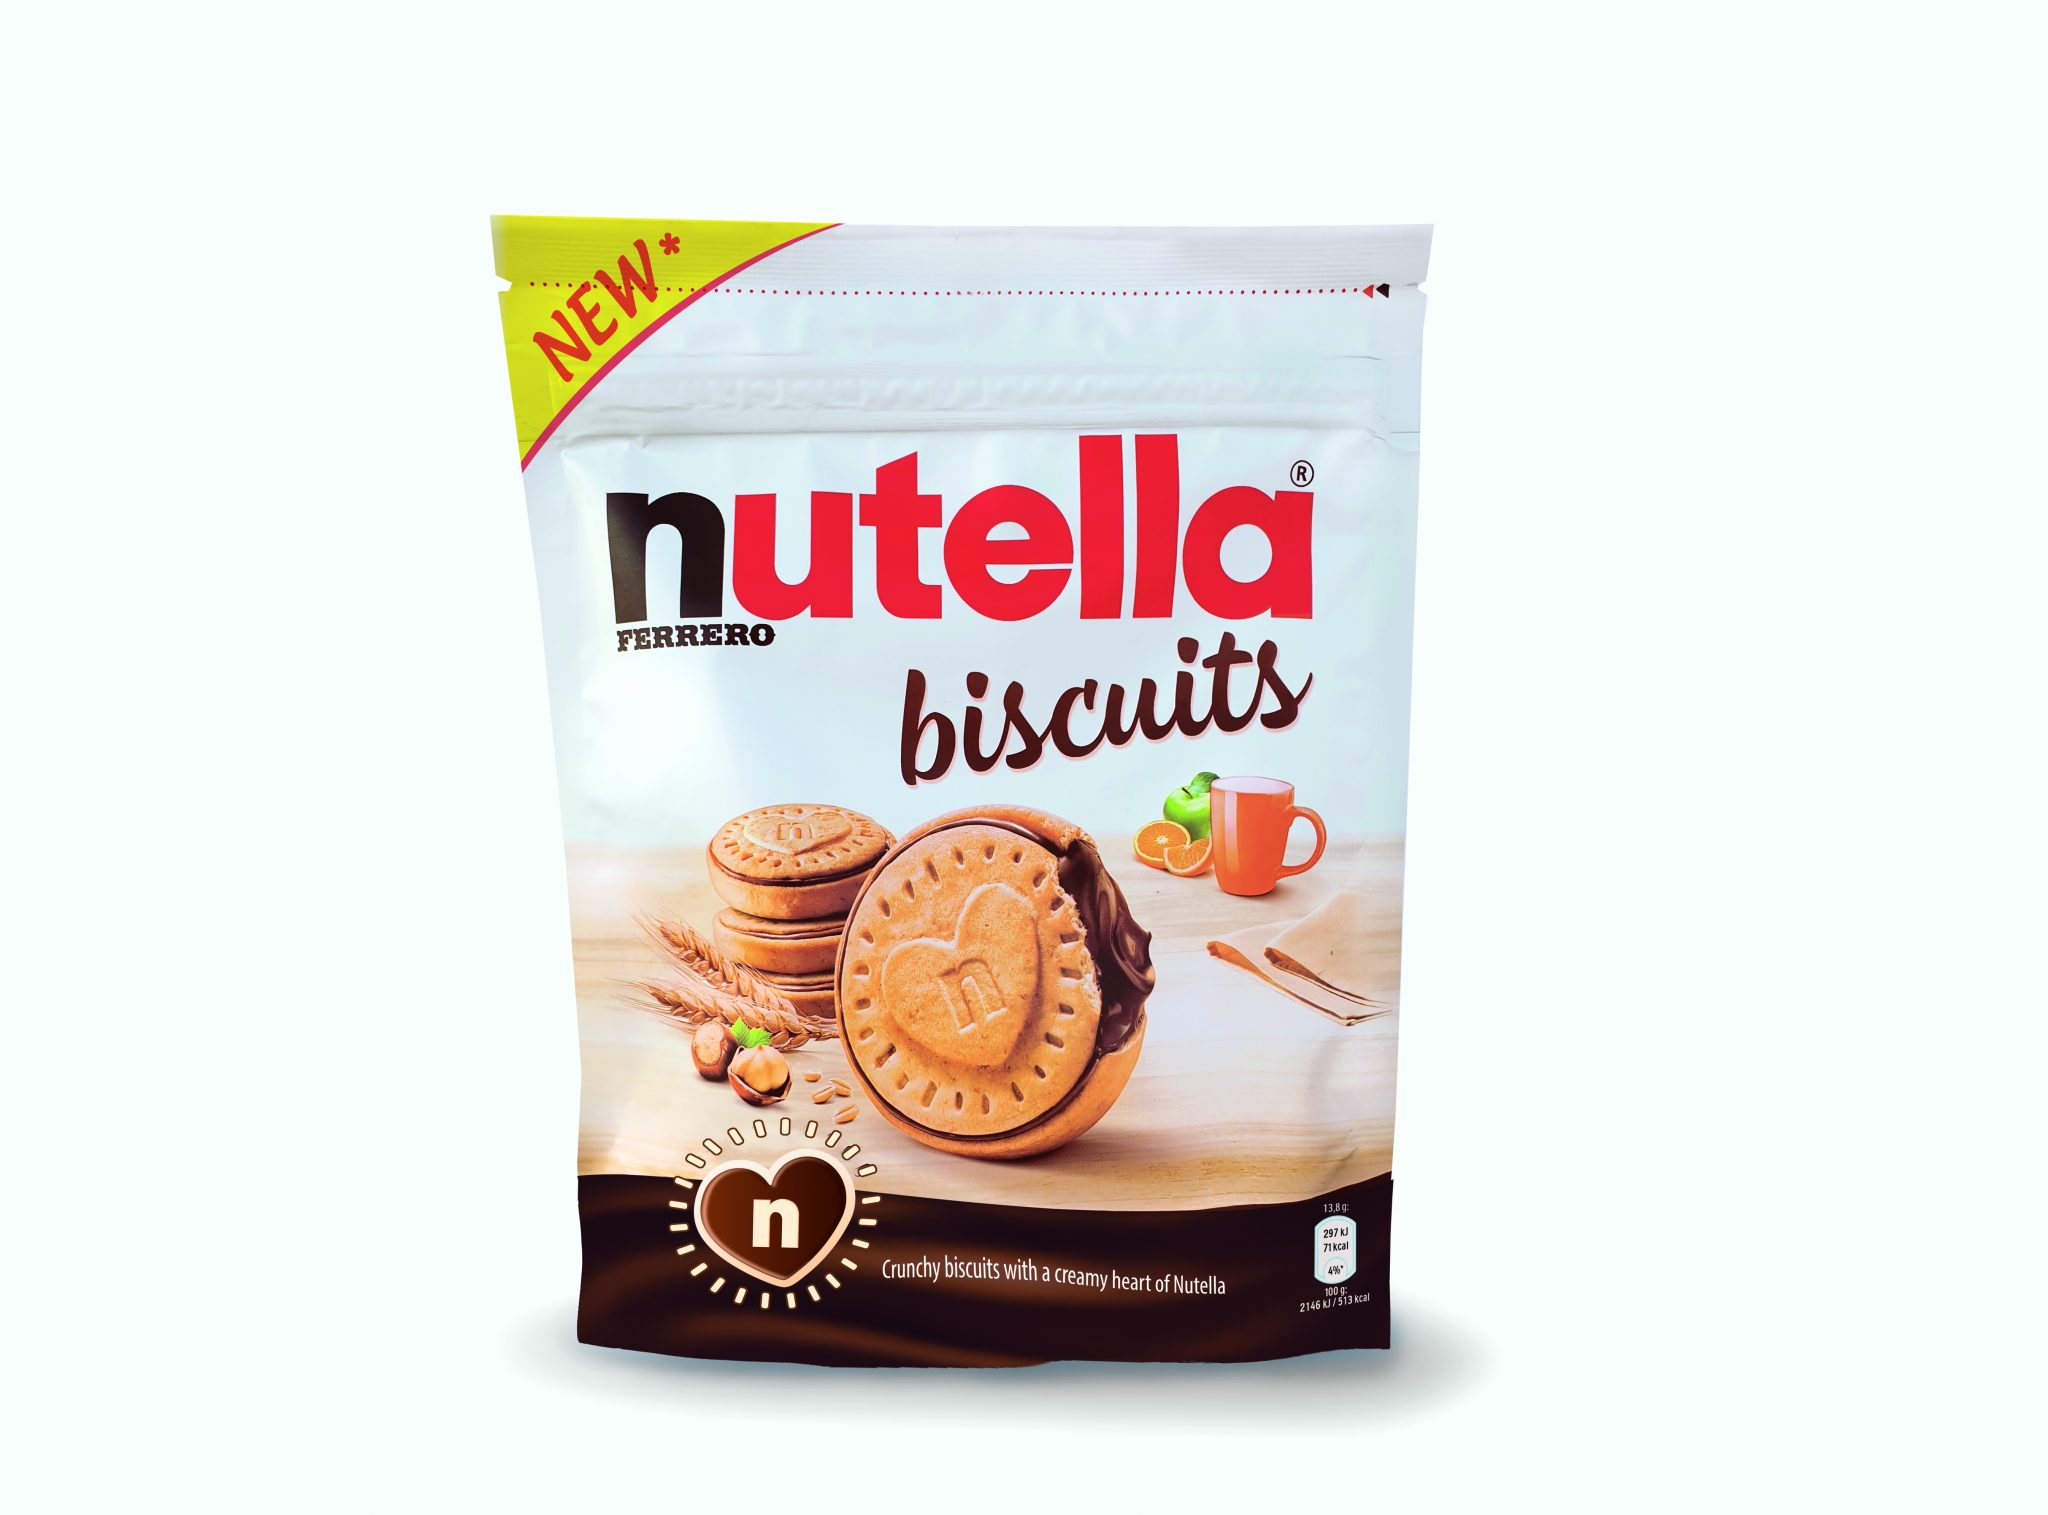 Nutella Biscuits have arrived in Ireland | Her.ie